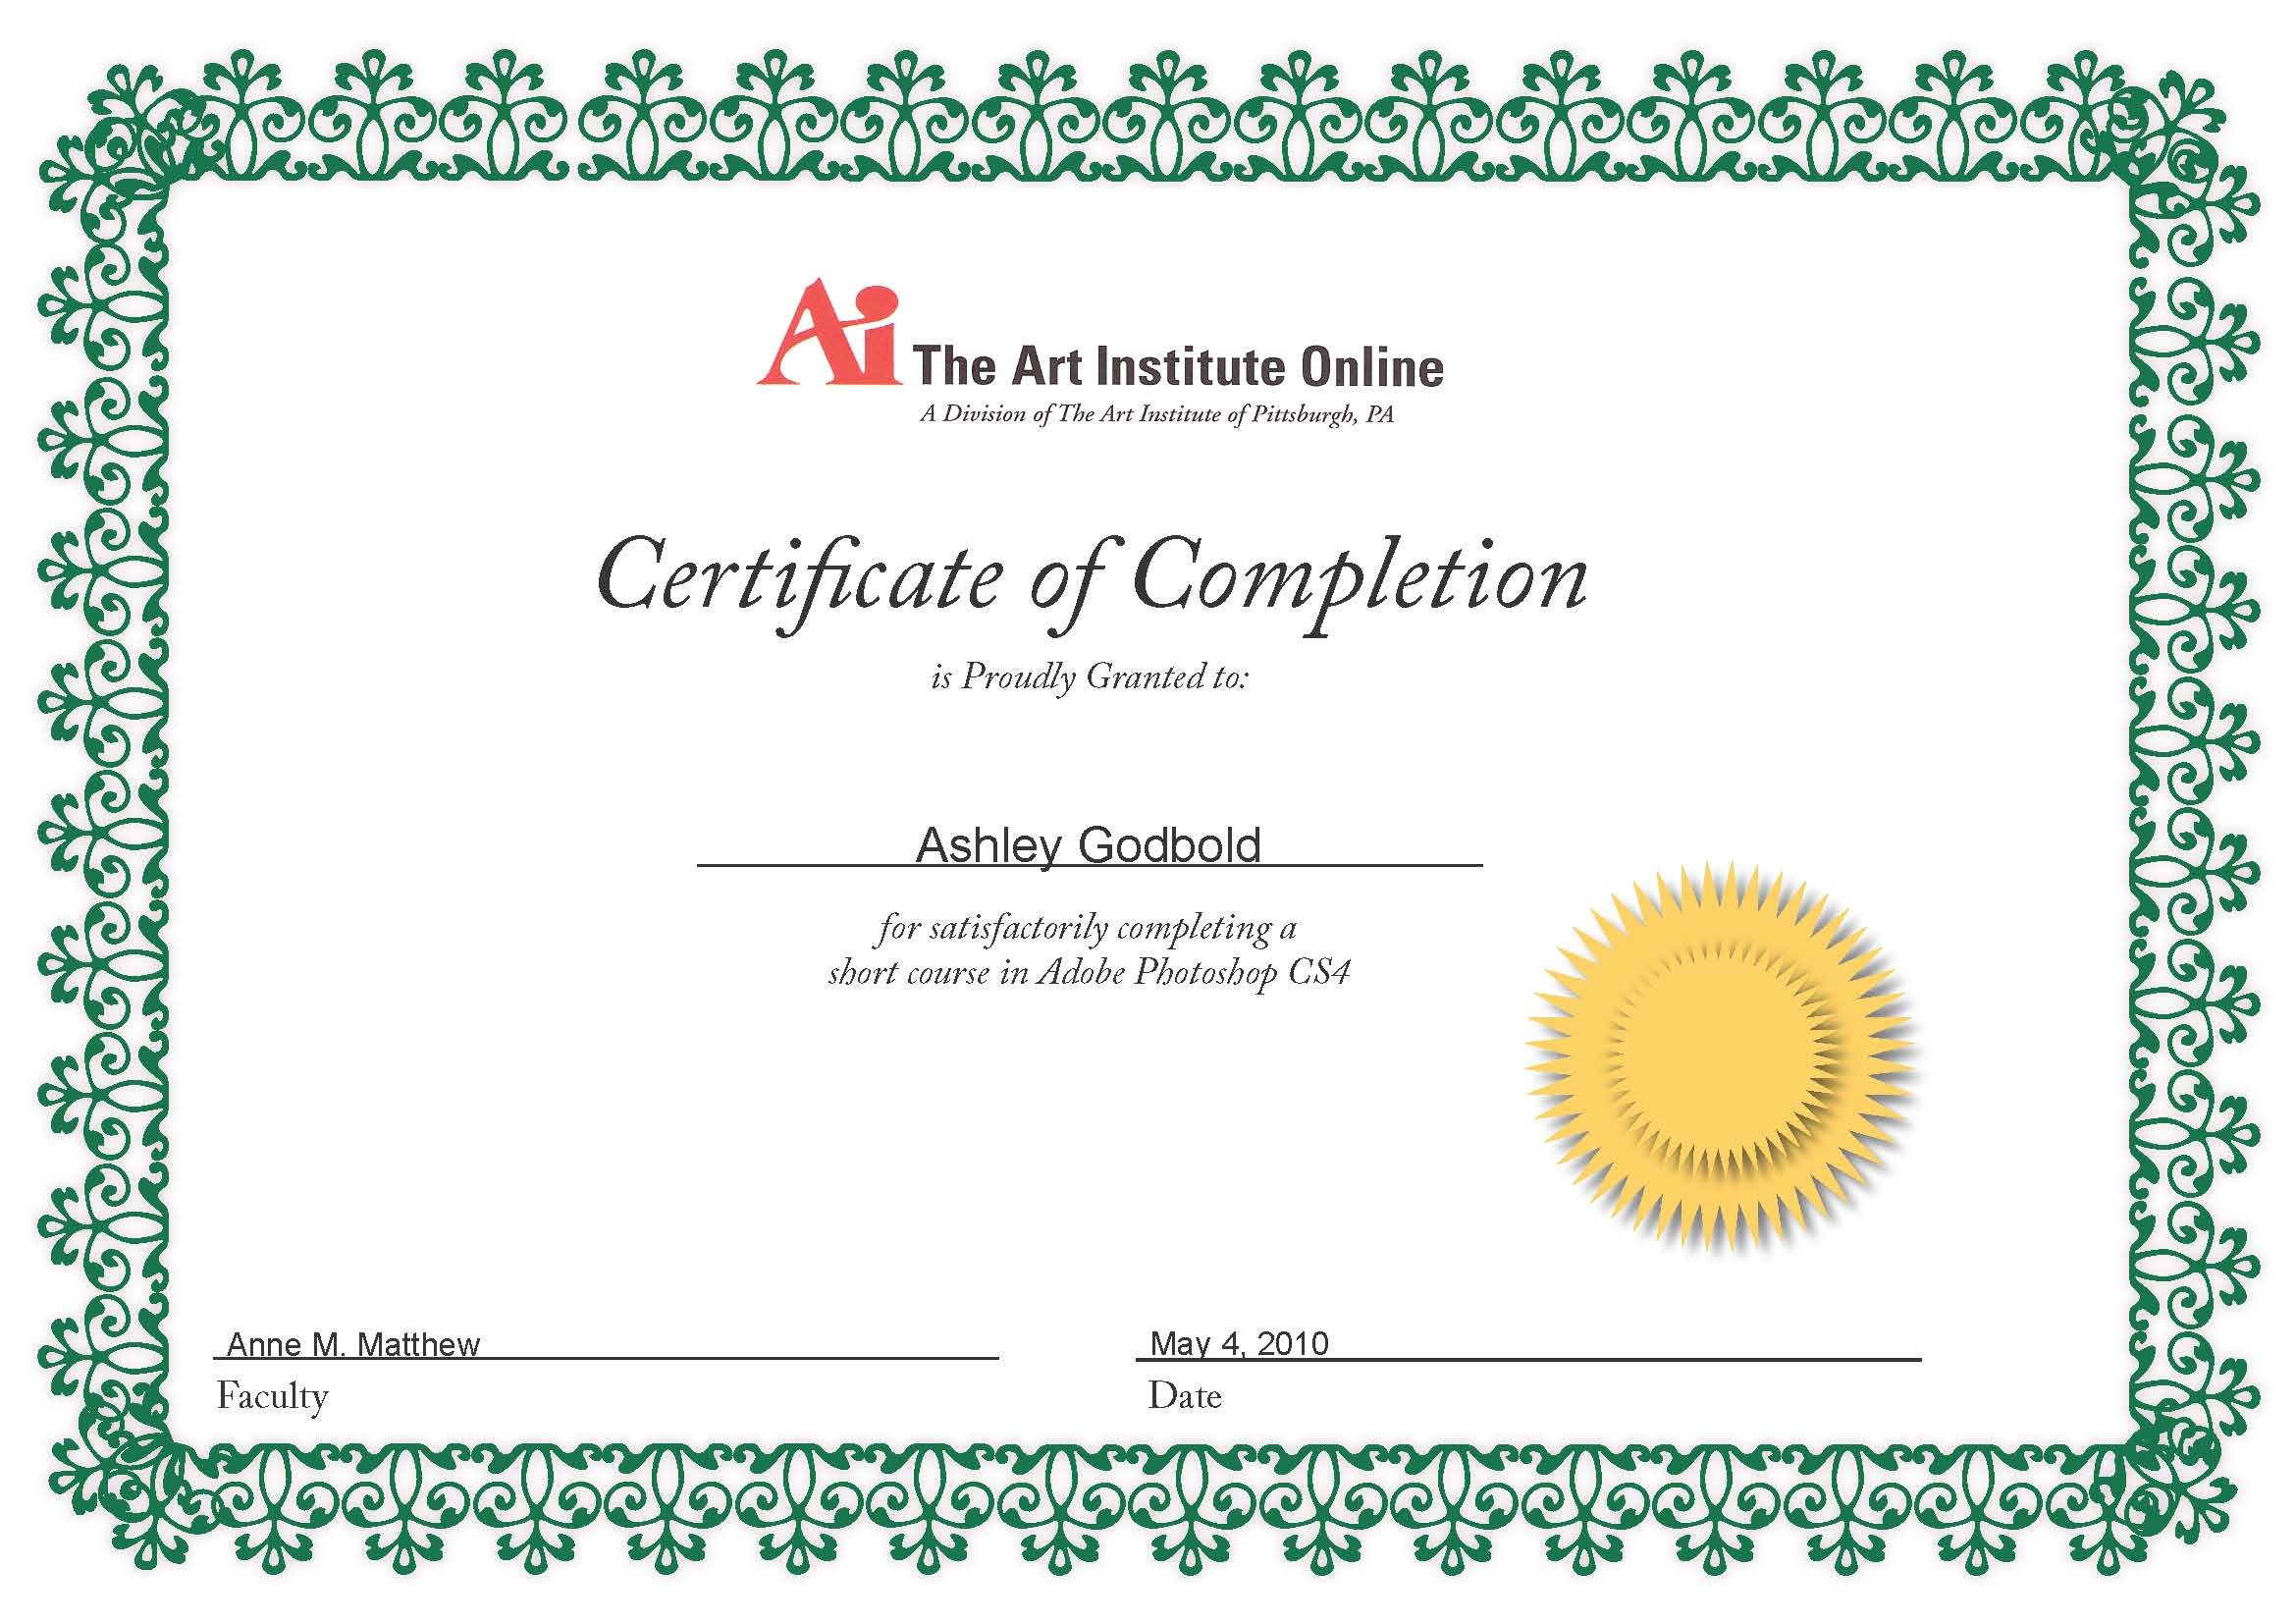 how to create a certificate template in word 2010 - photoshop and illustrator ashley godbold 39 s blog